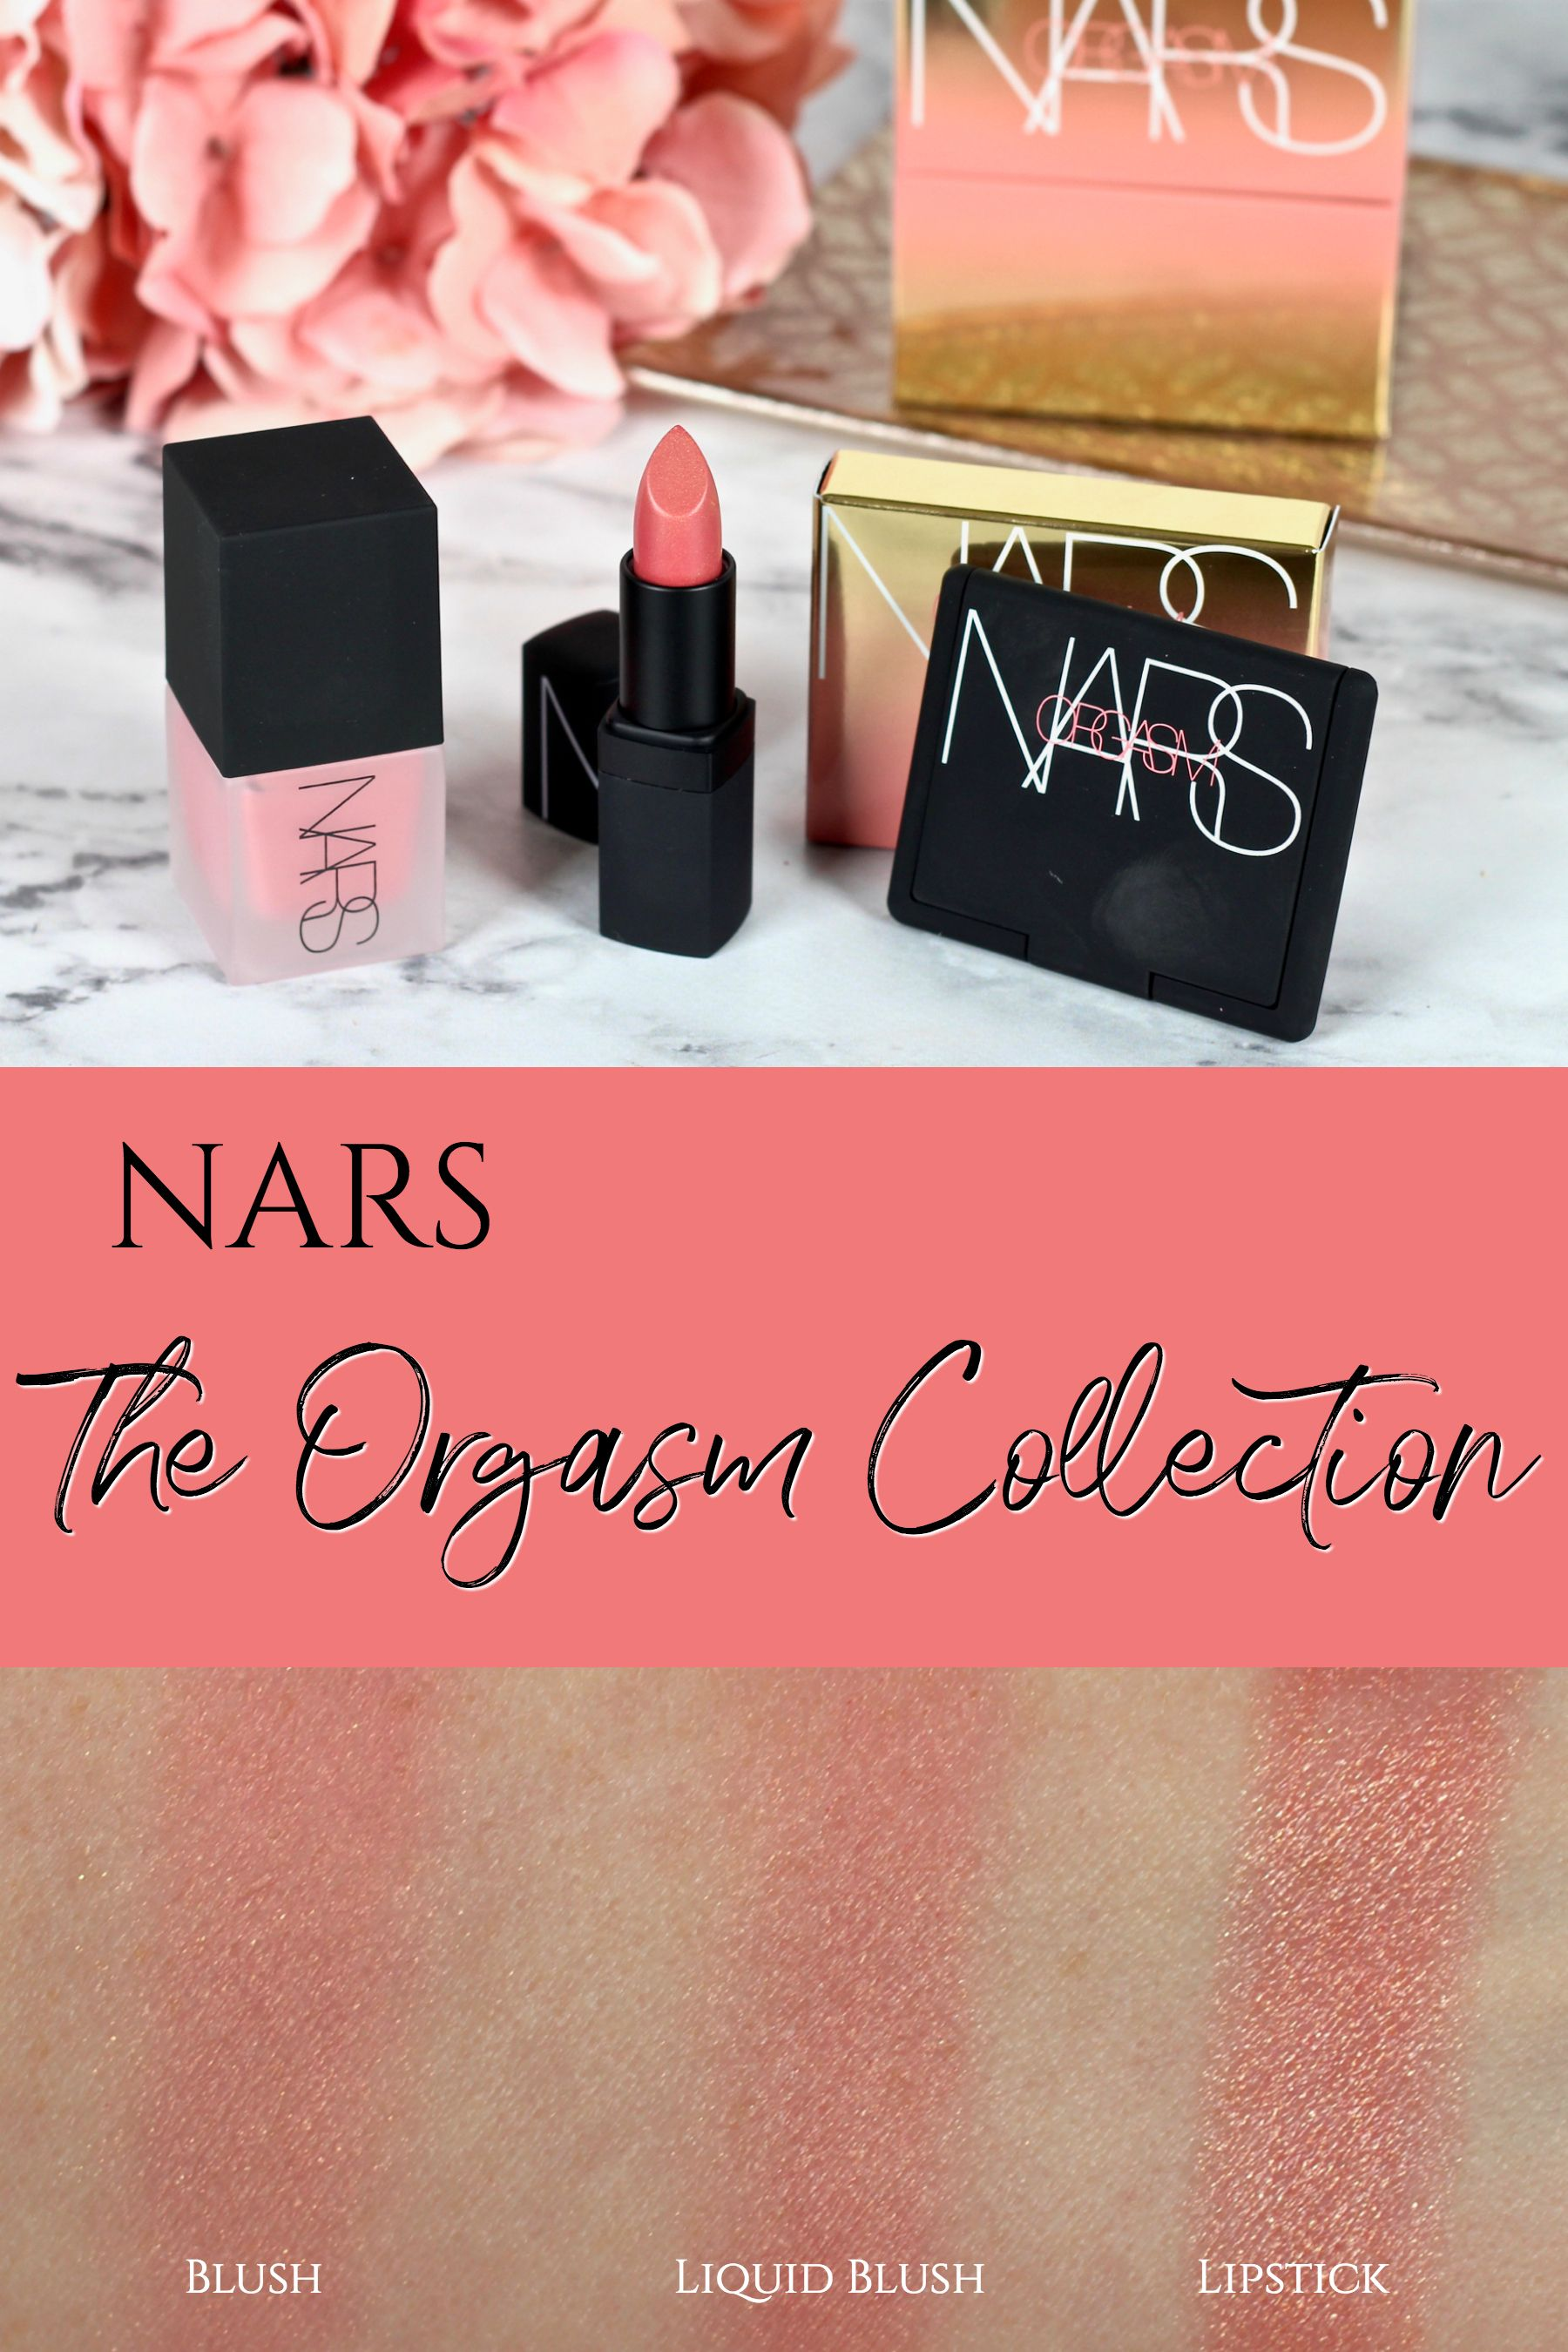 NARS The Orgasm Collection – New Products in the Iconic Shade